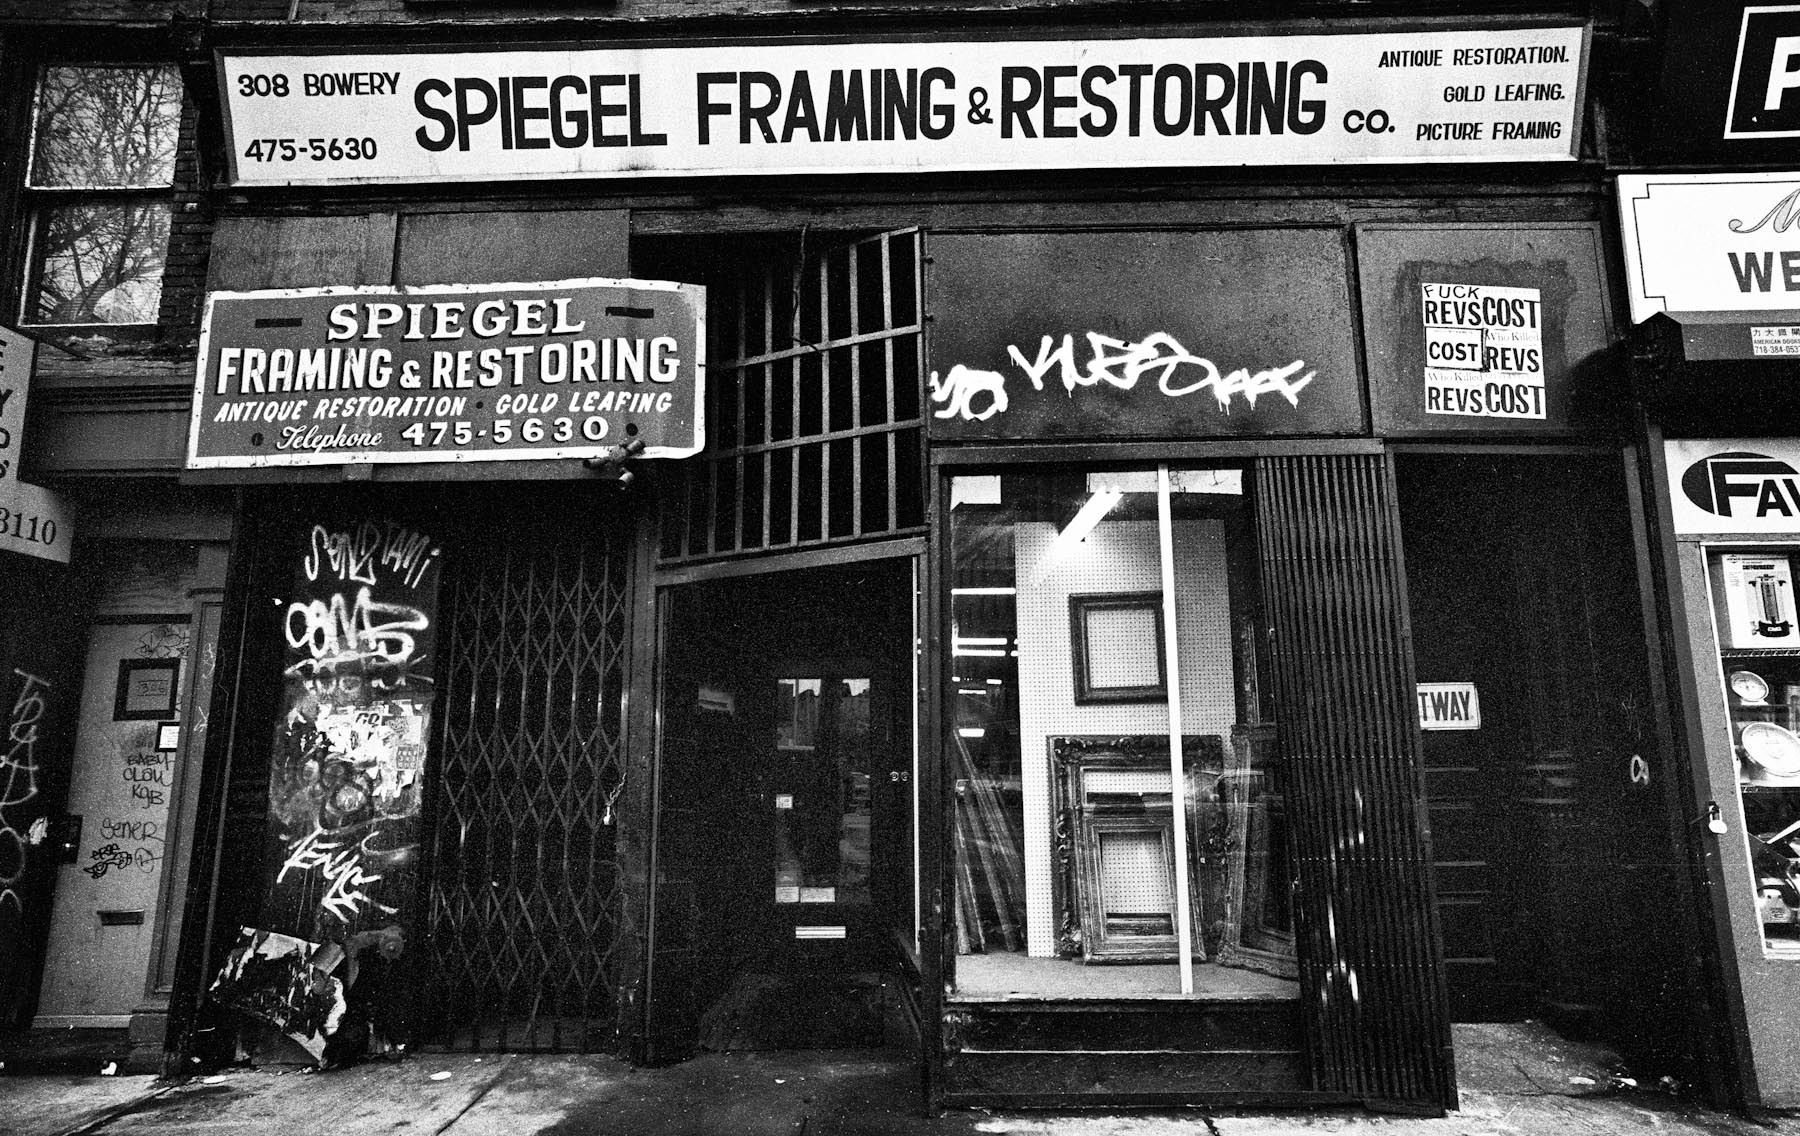 Lower East Side, NY 01/25/94